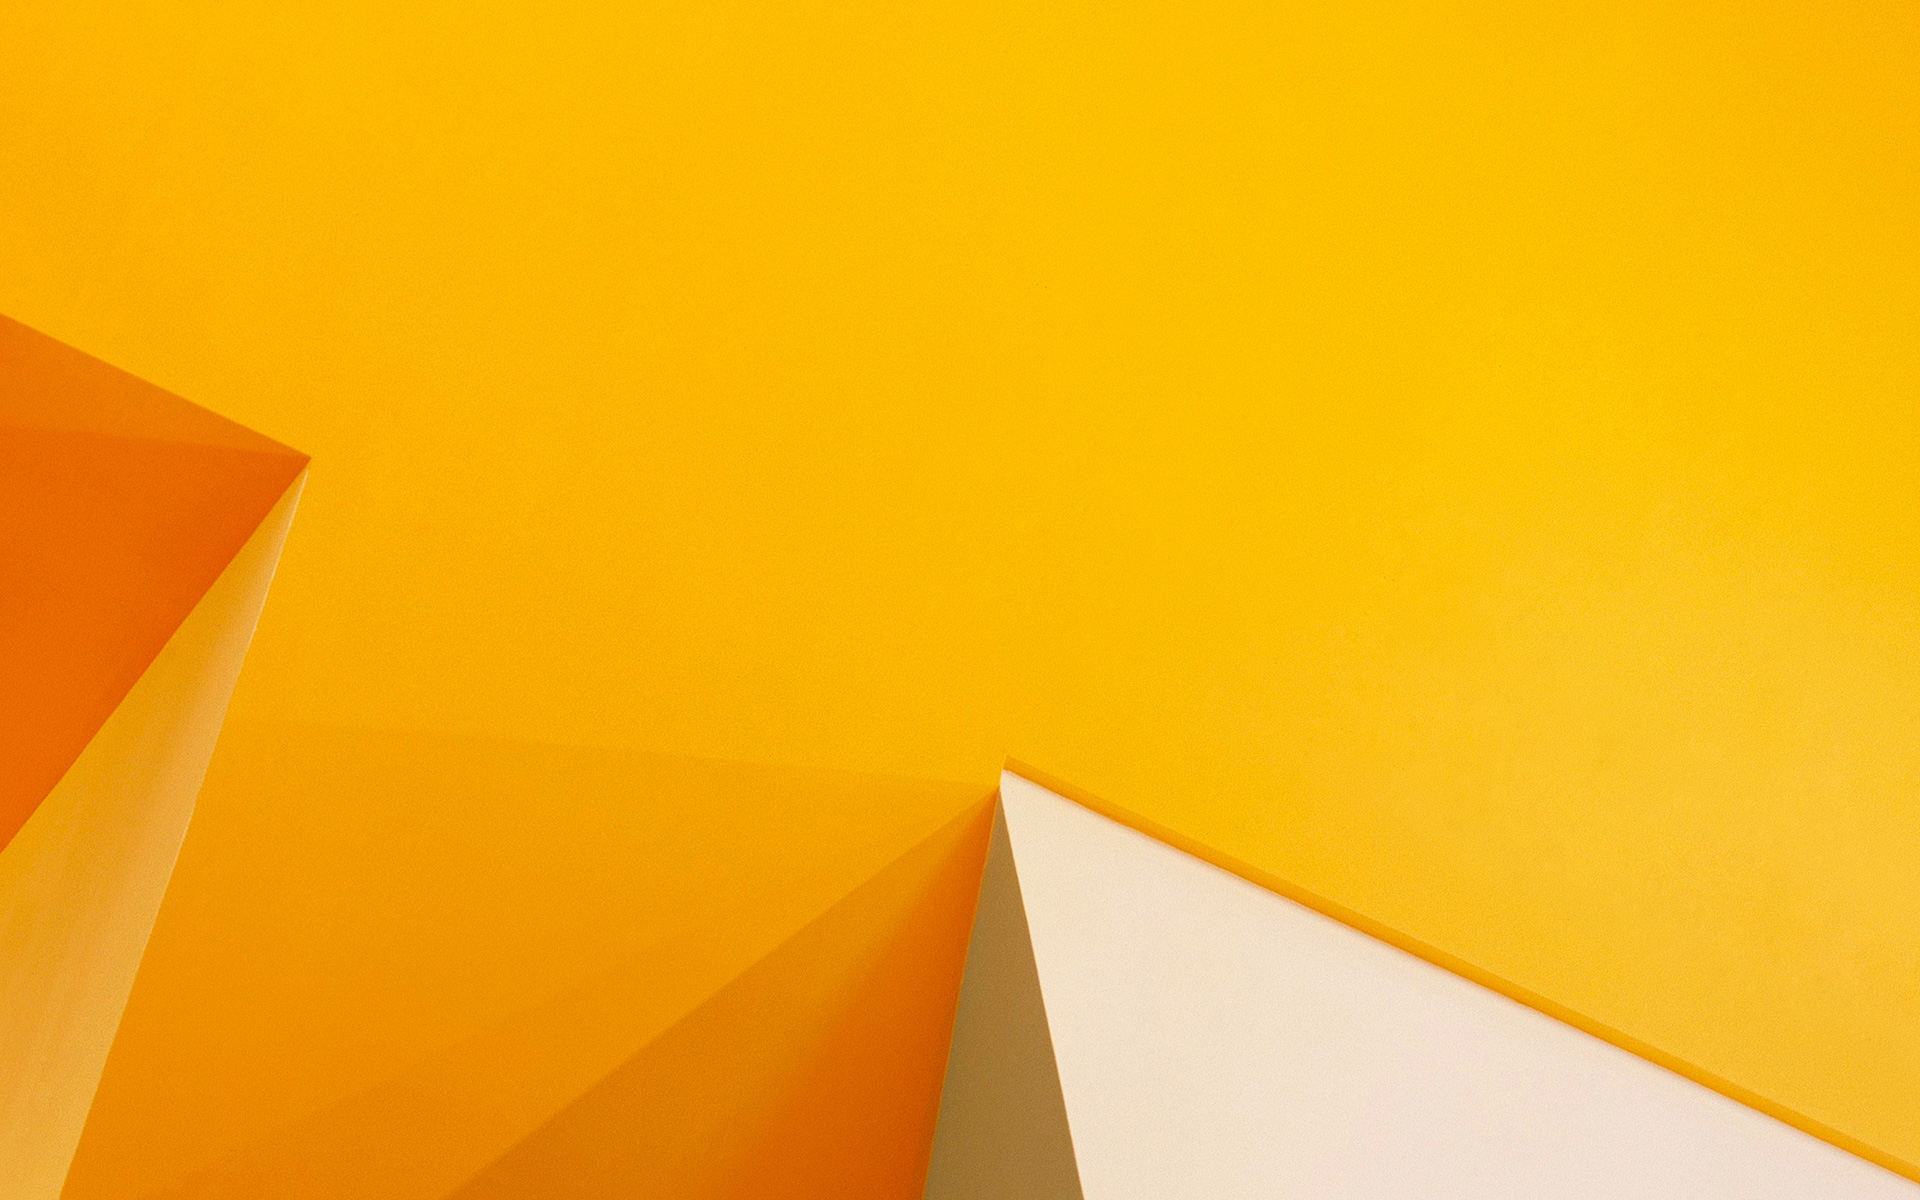 windows 8 default wallpapers - os wallpapers